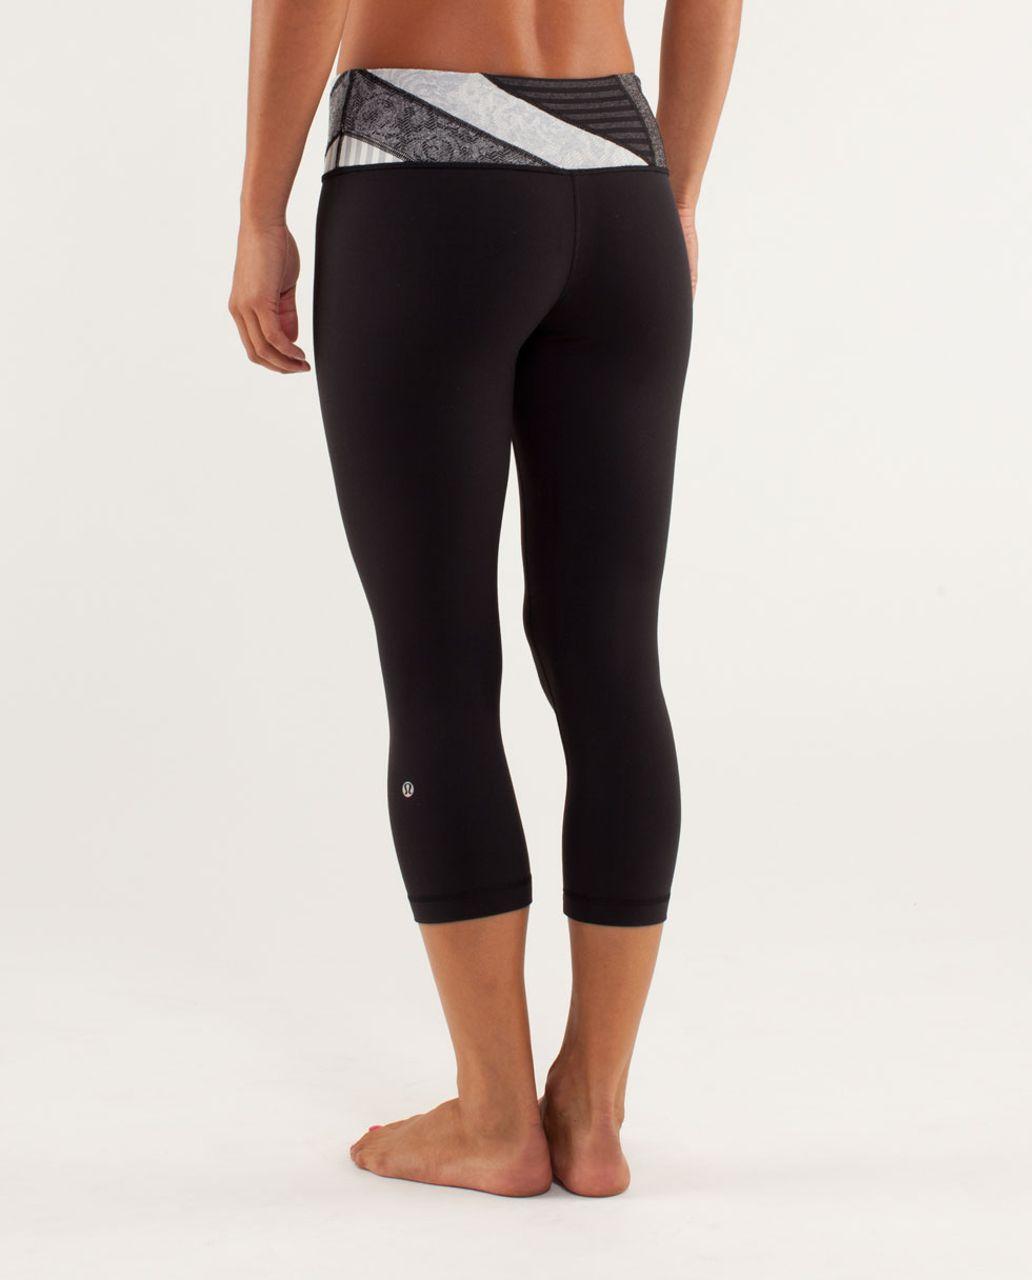 Lululemon Wunder Under Crop - Black / Quilting Winter 4 / Black